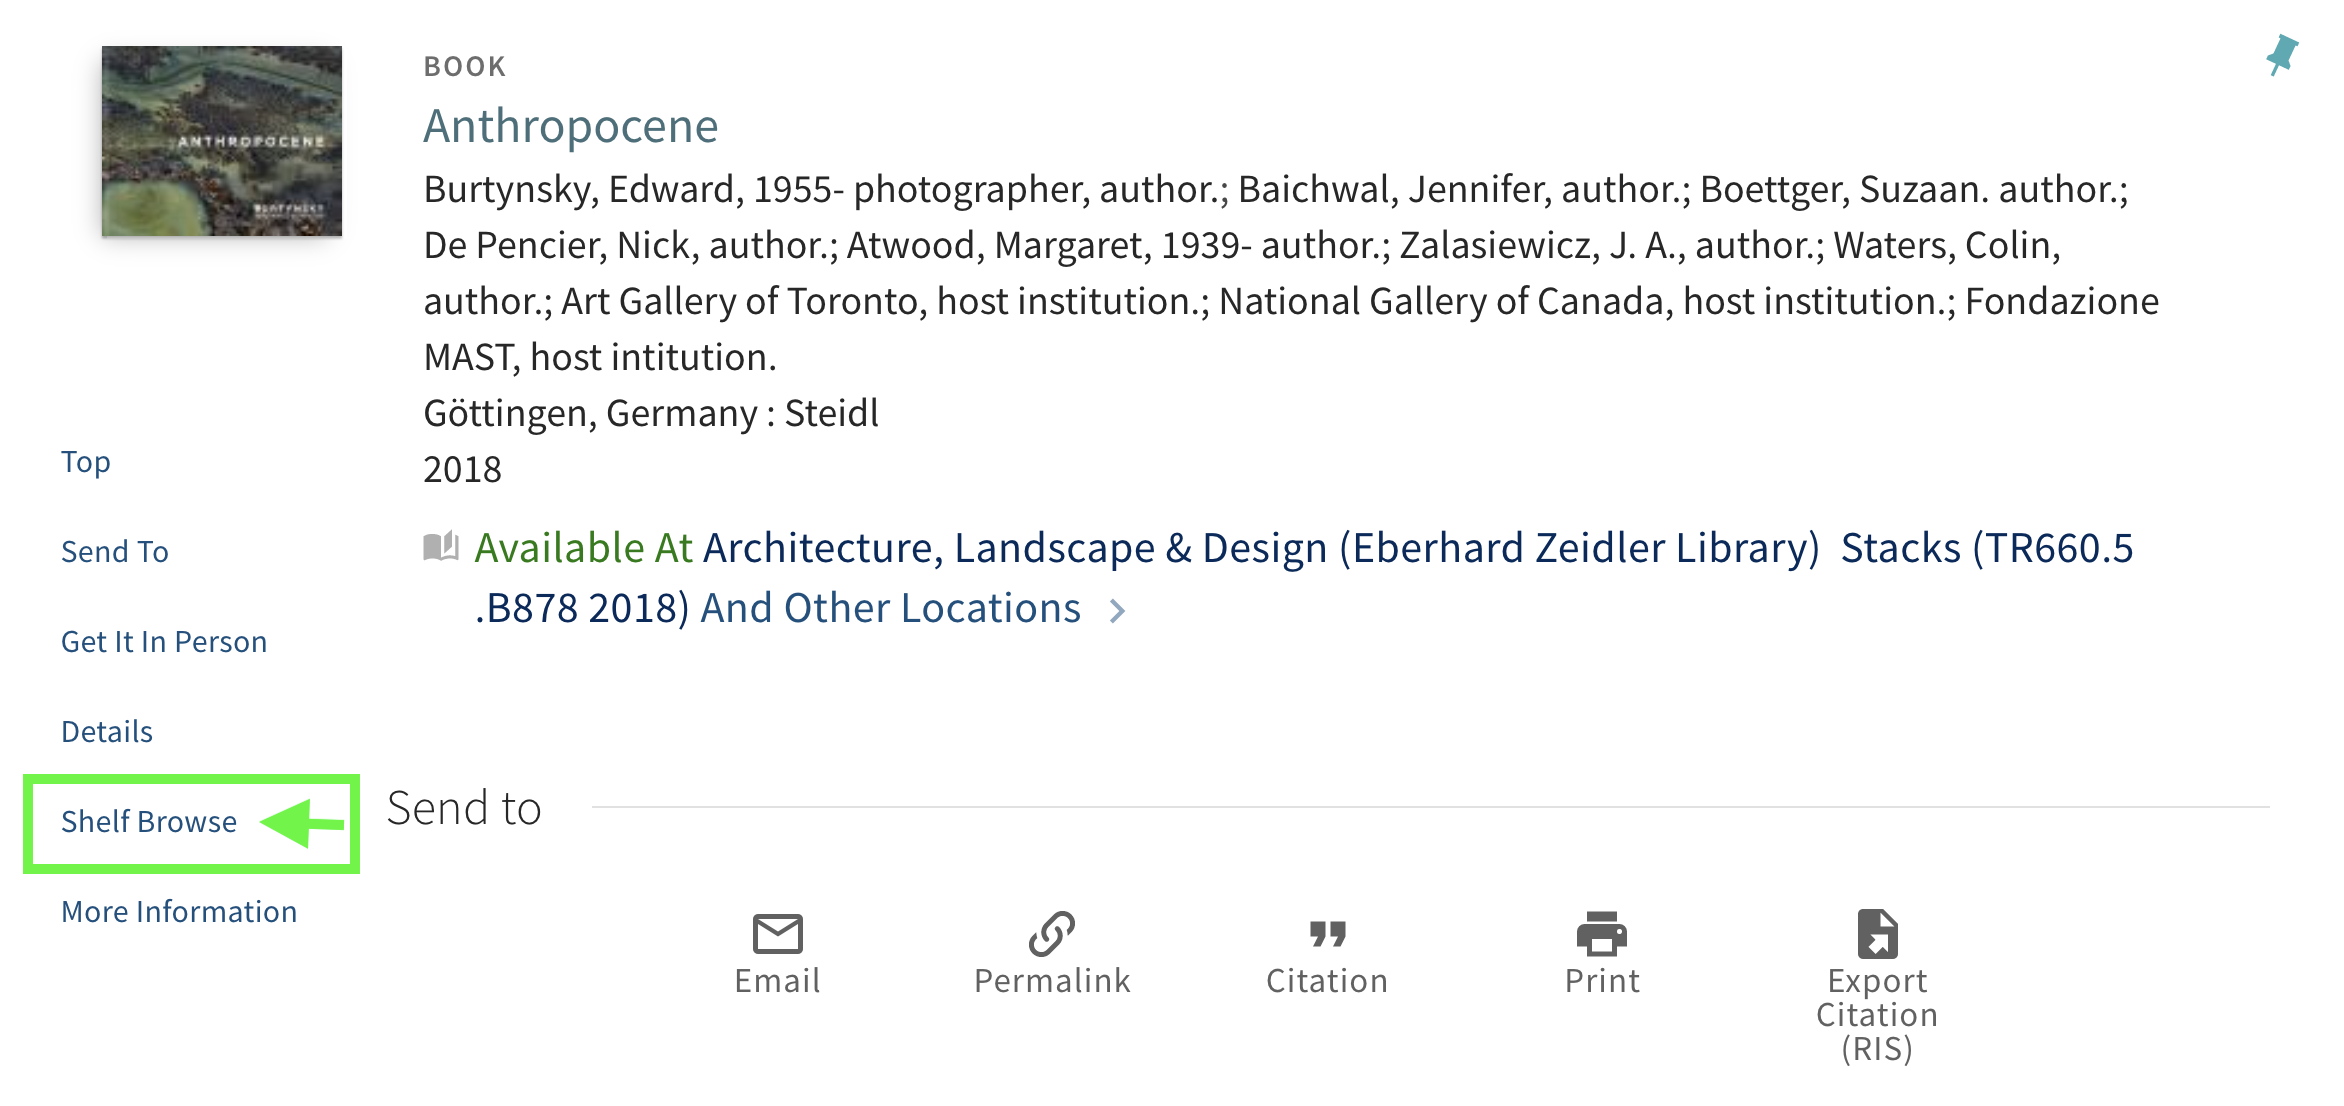 Detailed record of the book Anthropocene with the Shelf Browse menu option highlighted.